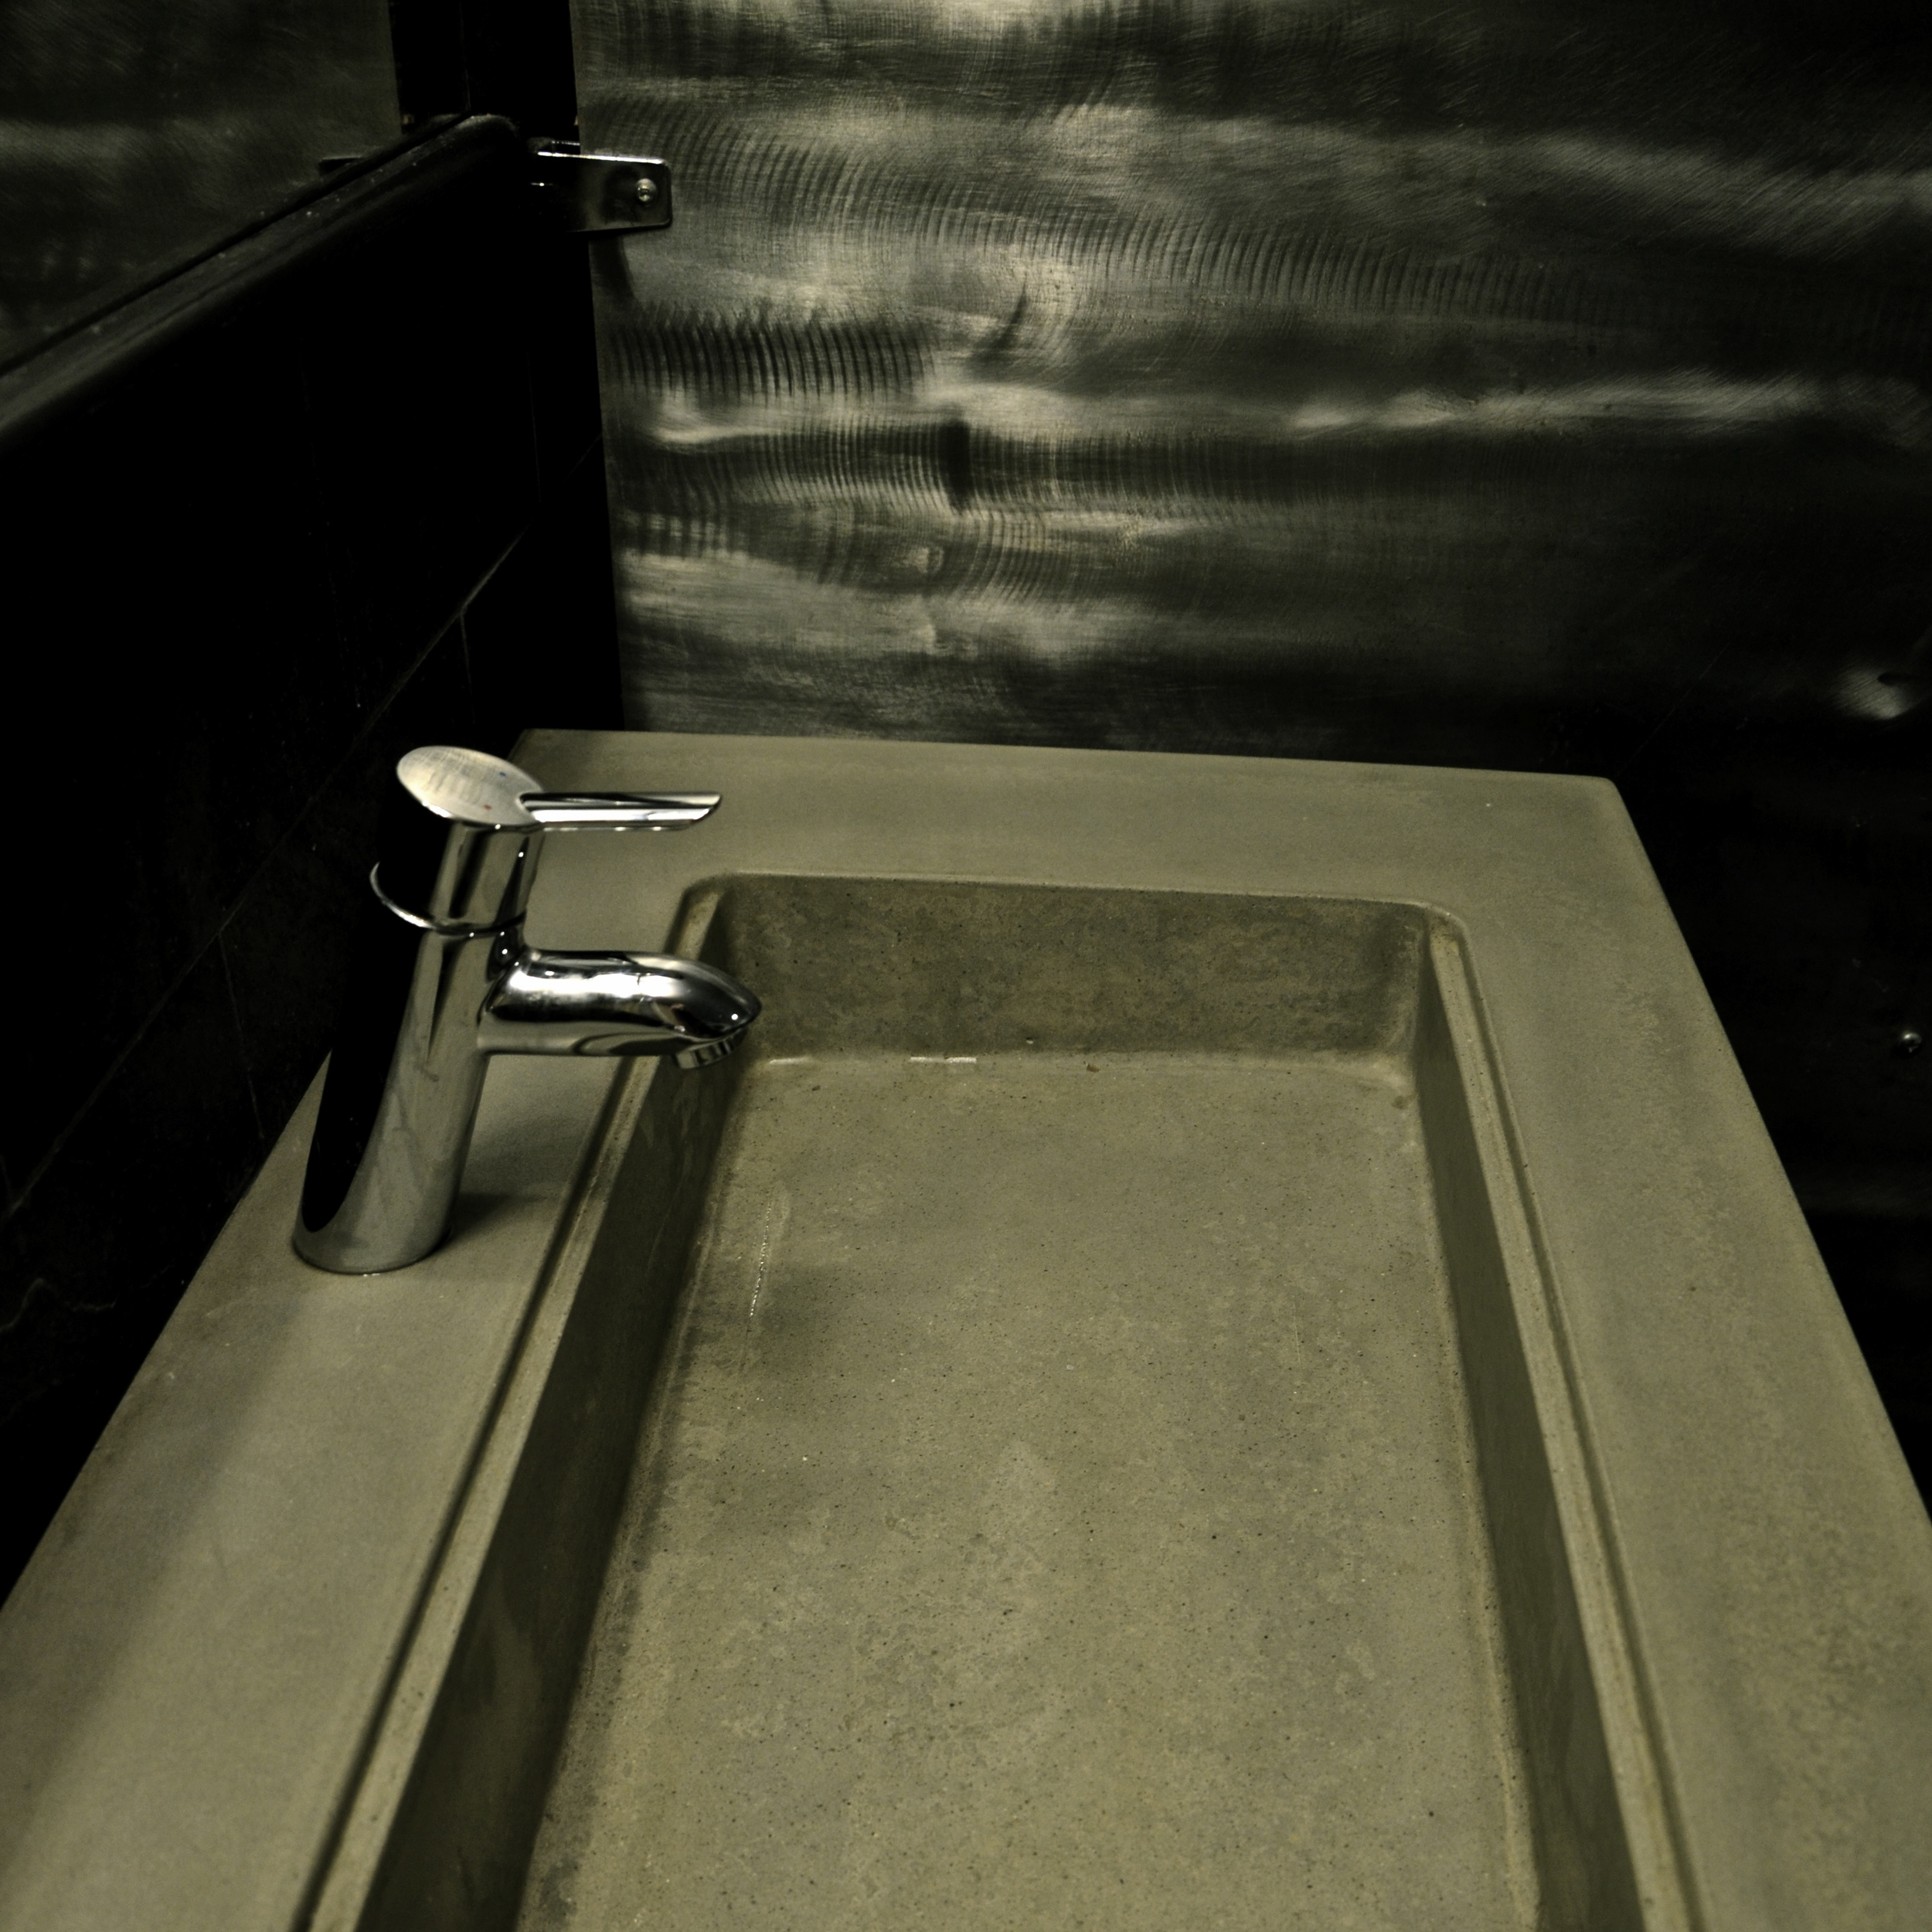 Piecasso Sink.jpg